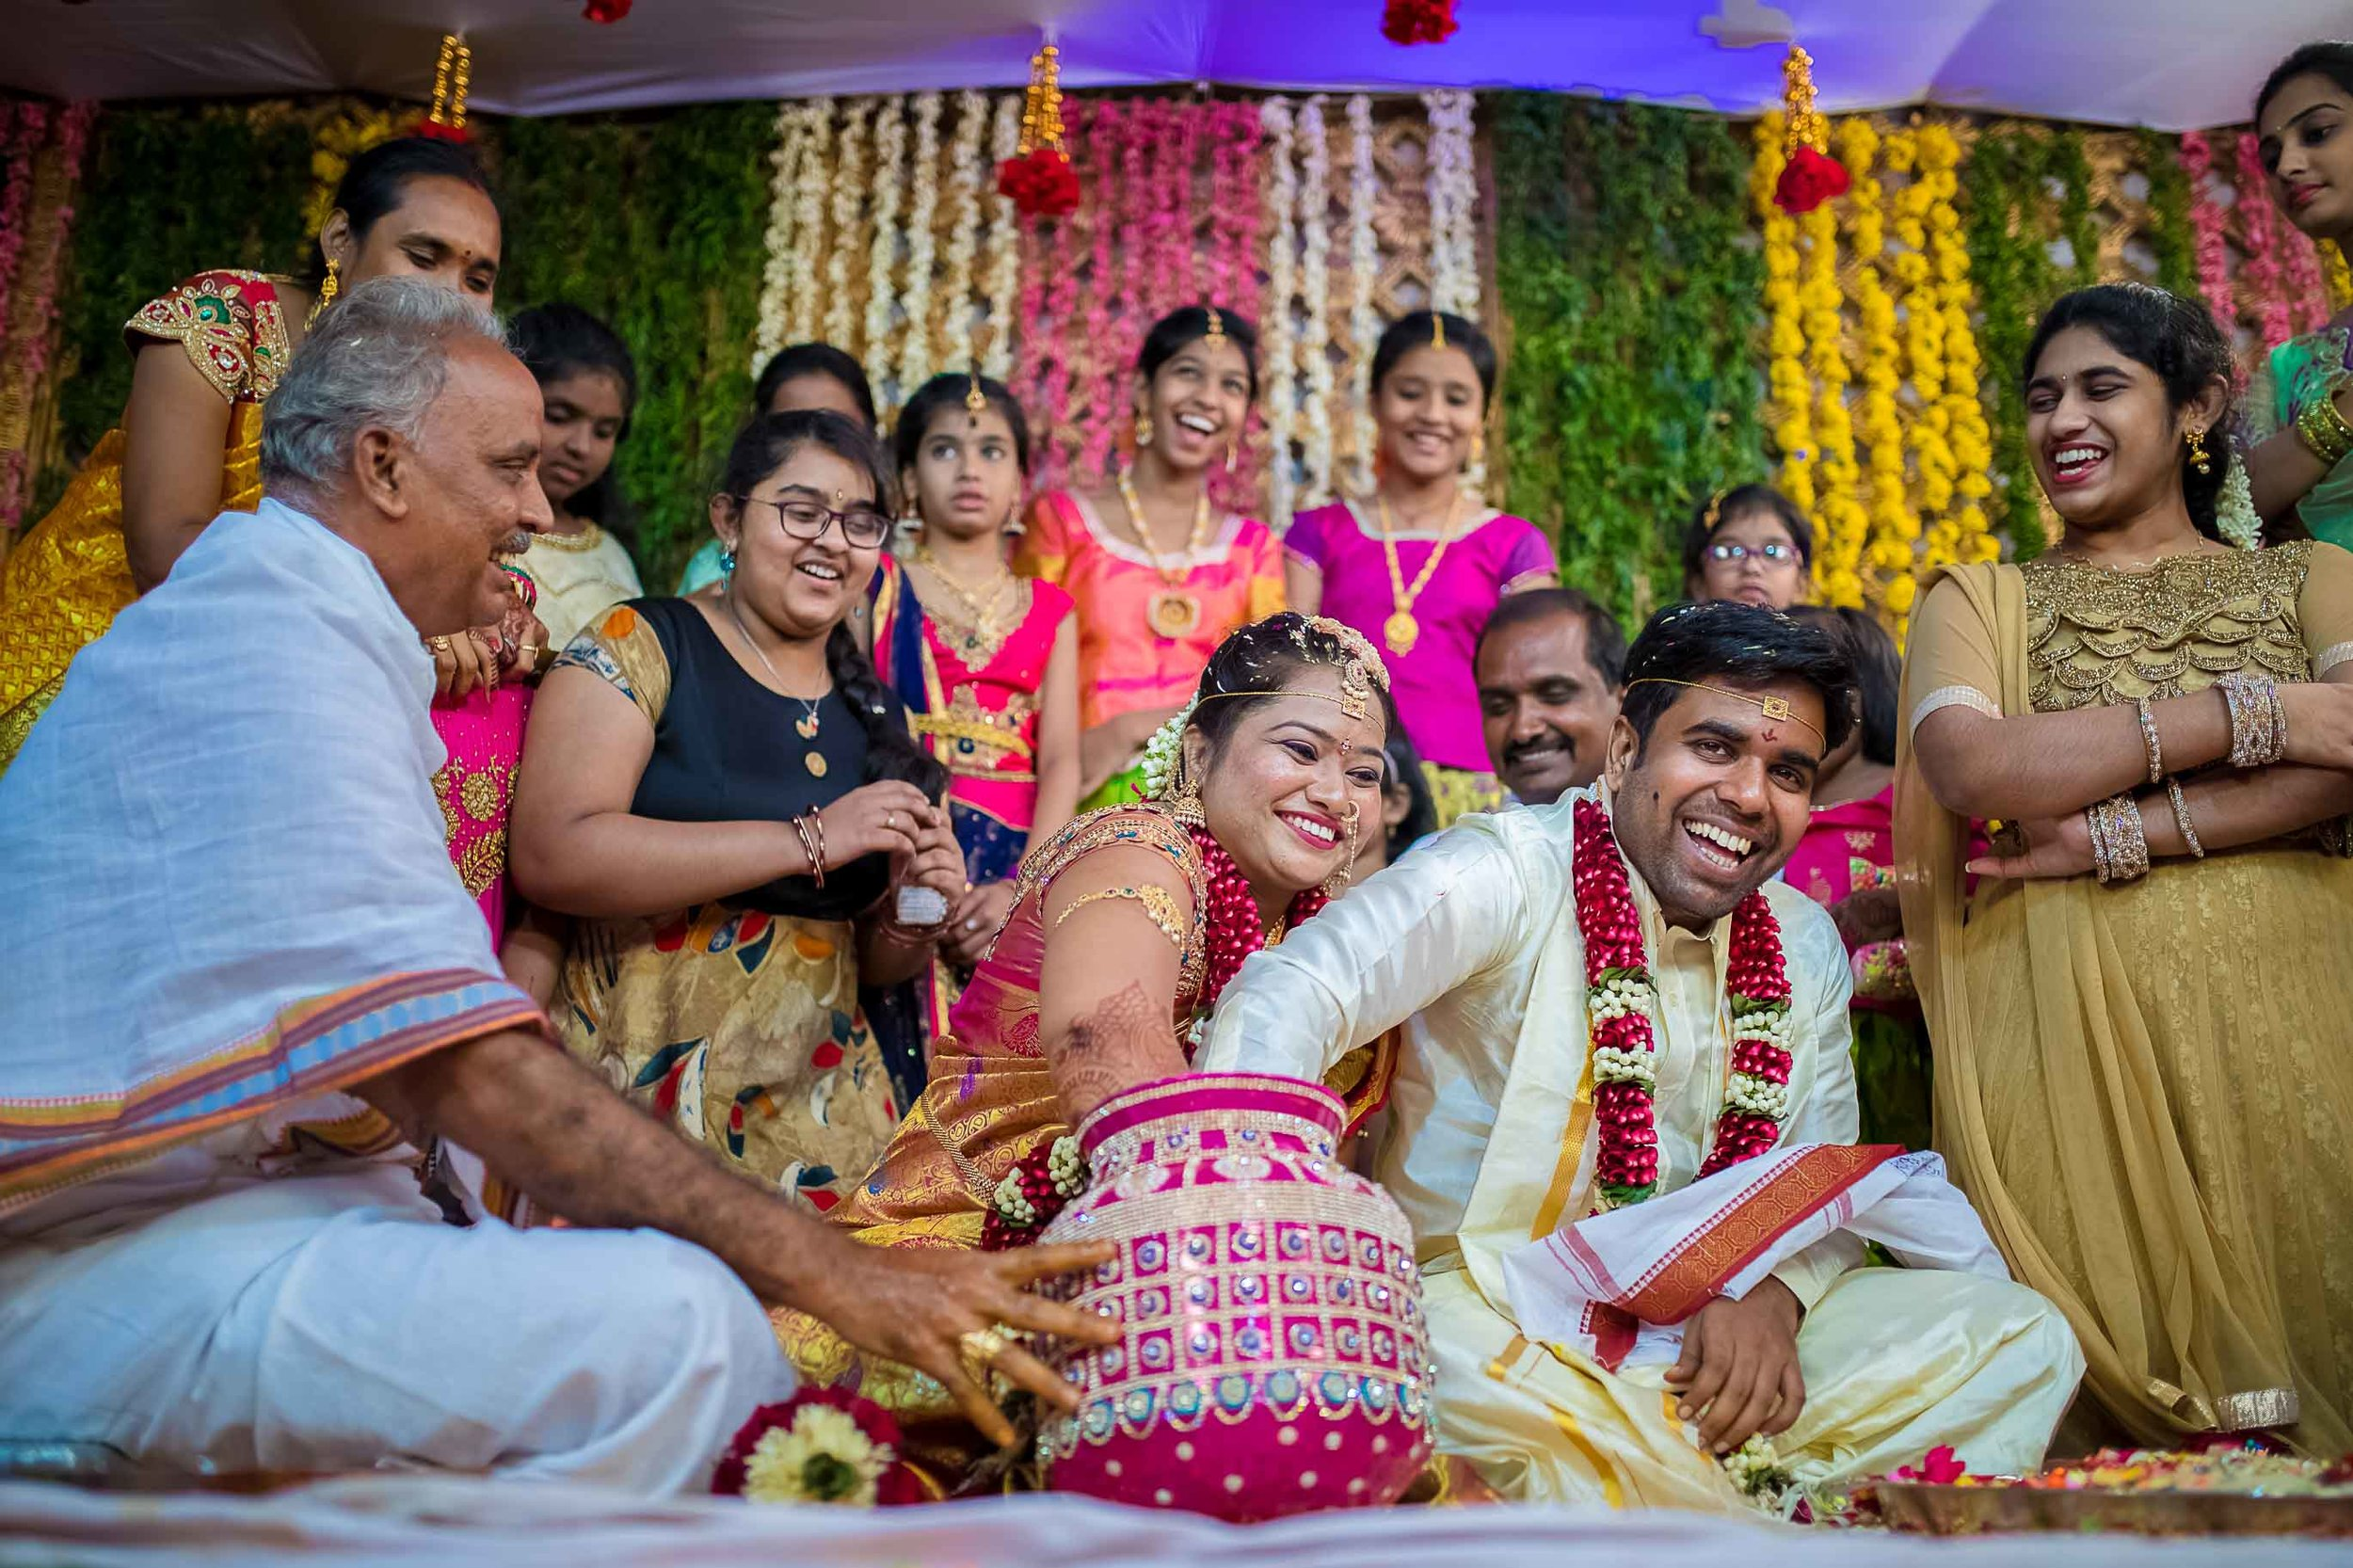 Pixel-Chronicles-Alekhya-Chaitanya-Nellore-Candid-Wedding-Ring-Finding-Ceremony-26.jpg